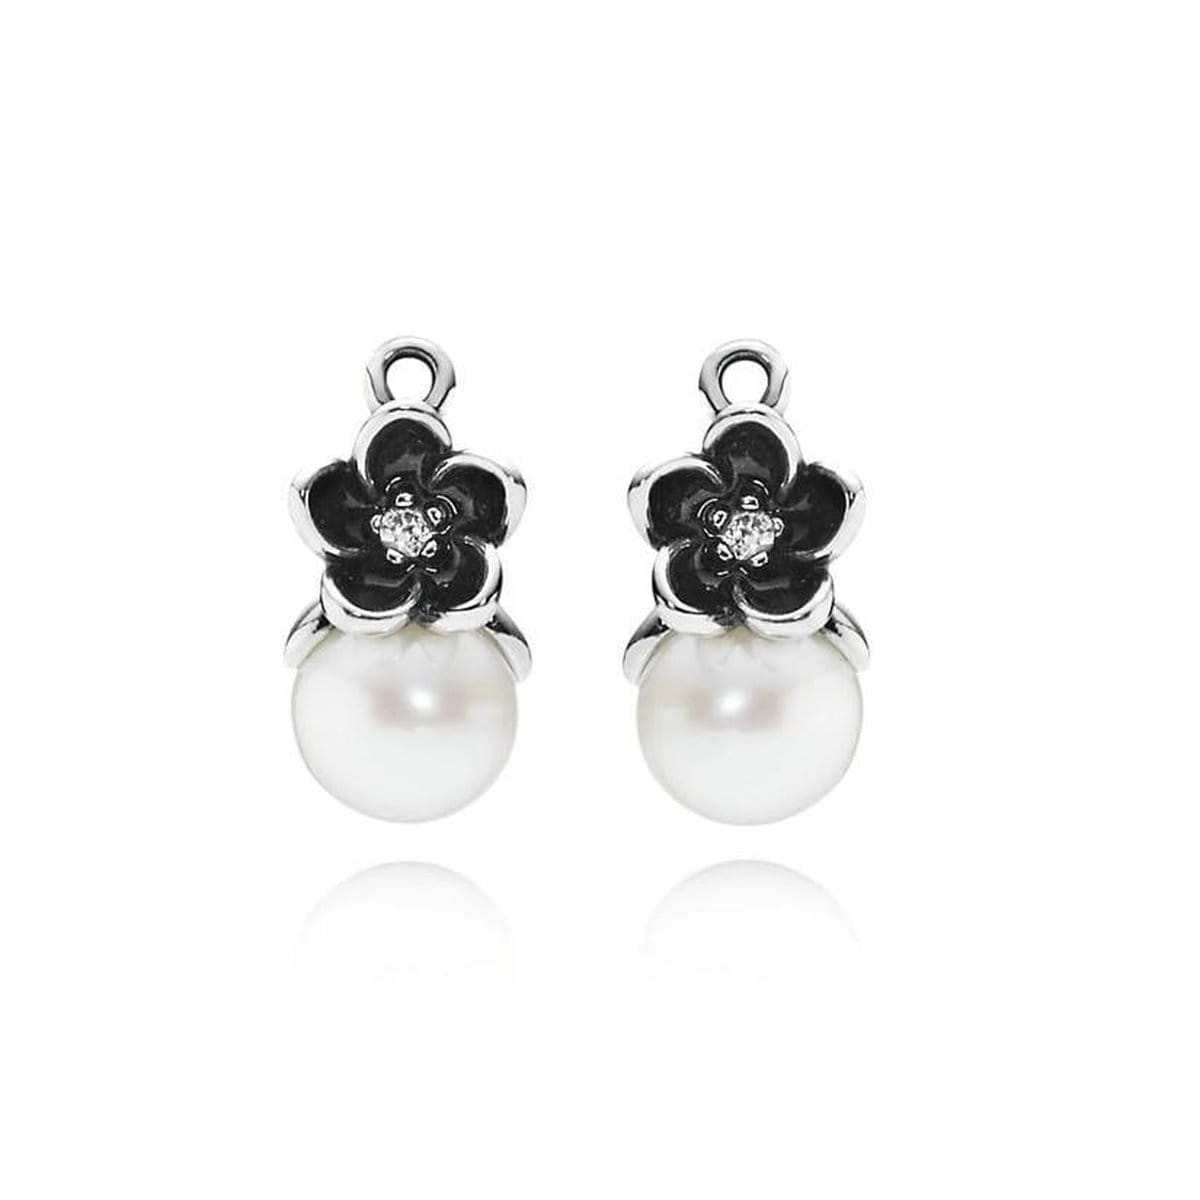 Charm Mystic Floral White Pearl Clear Cubic Zirconia & Black Enamel Earrings - 290684P-Pandora-Renee Taylor Gallery